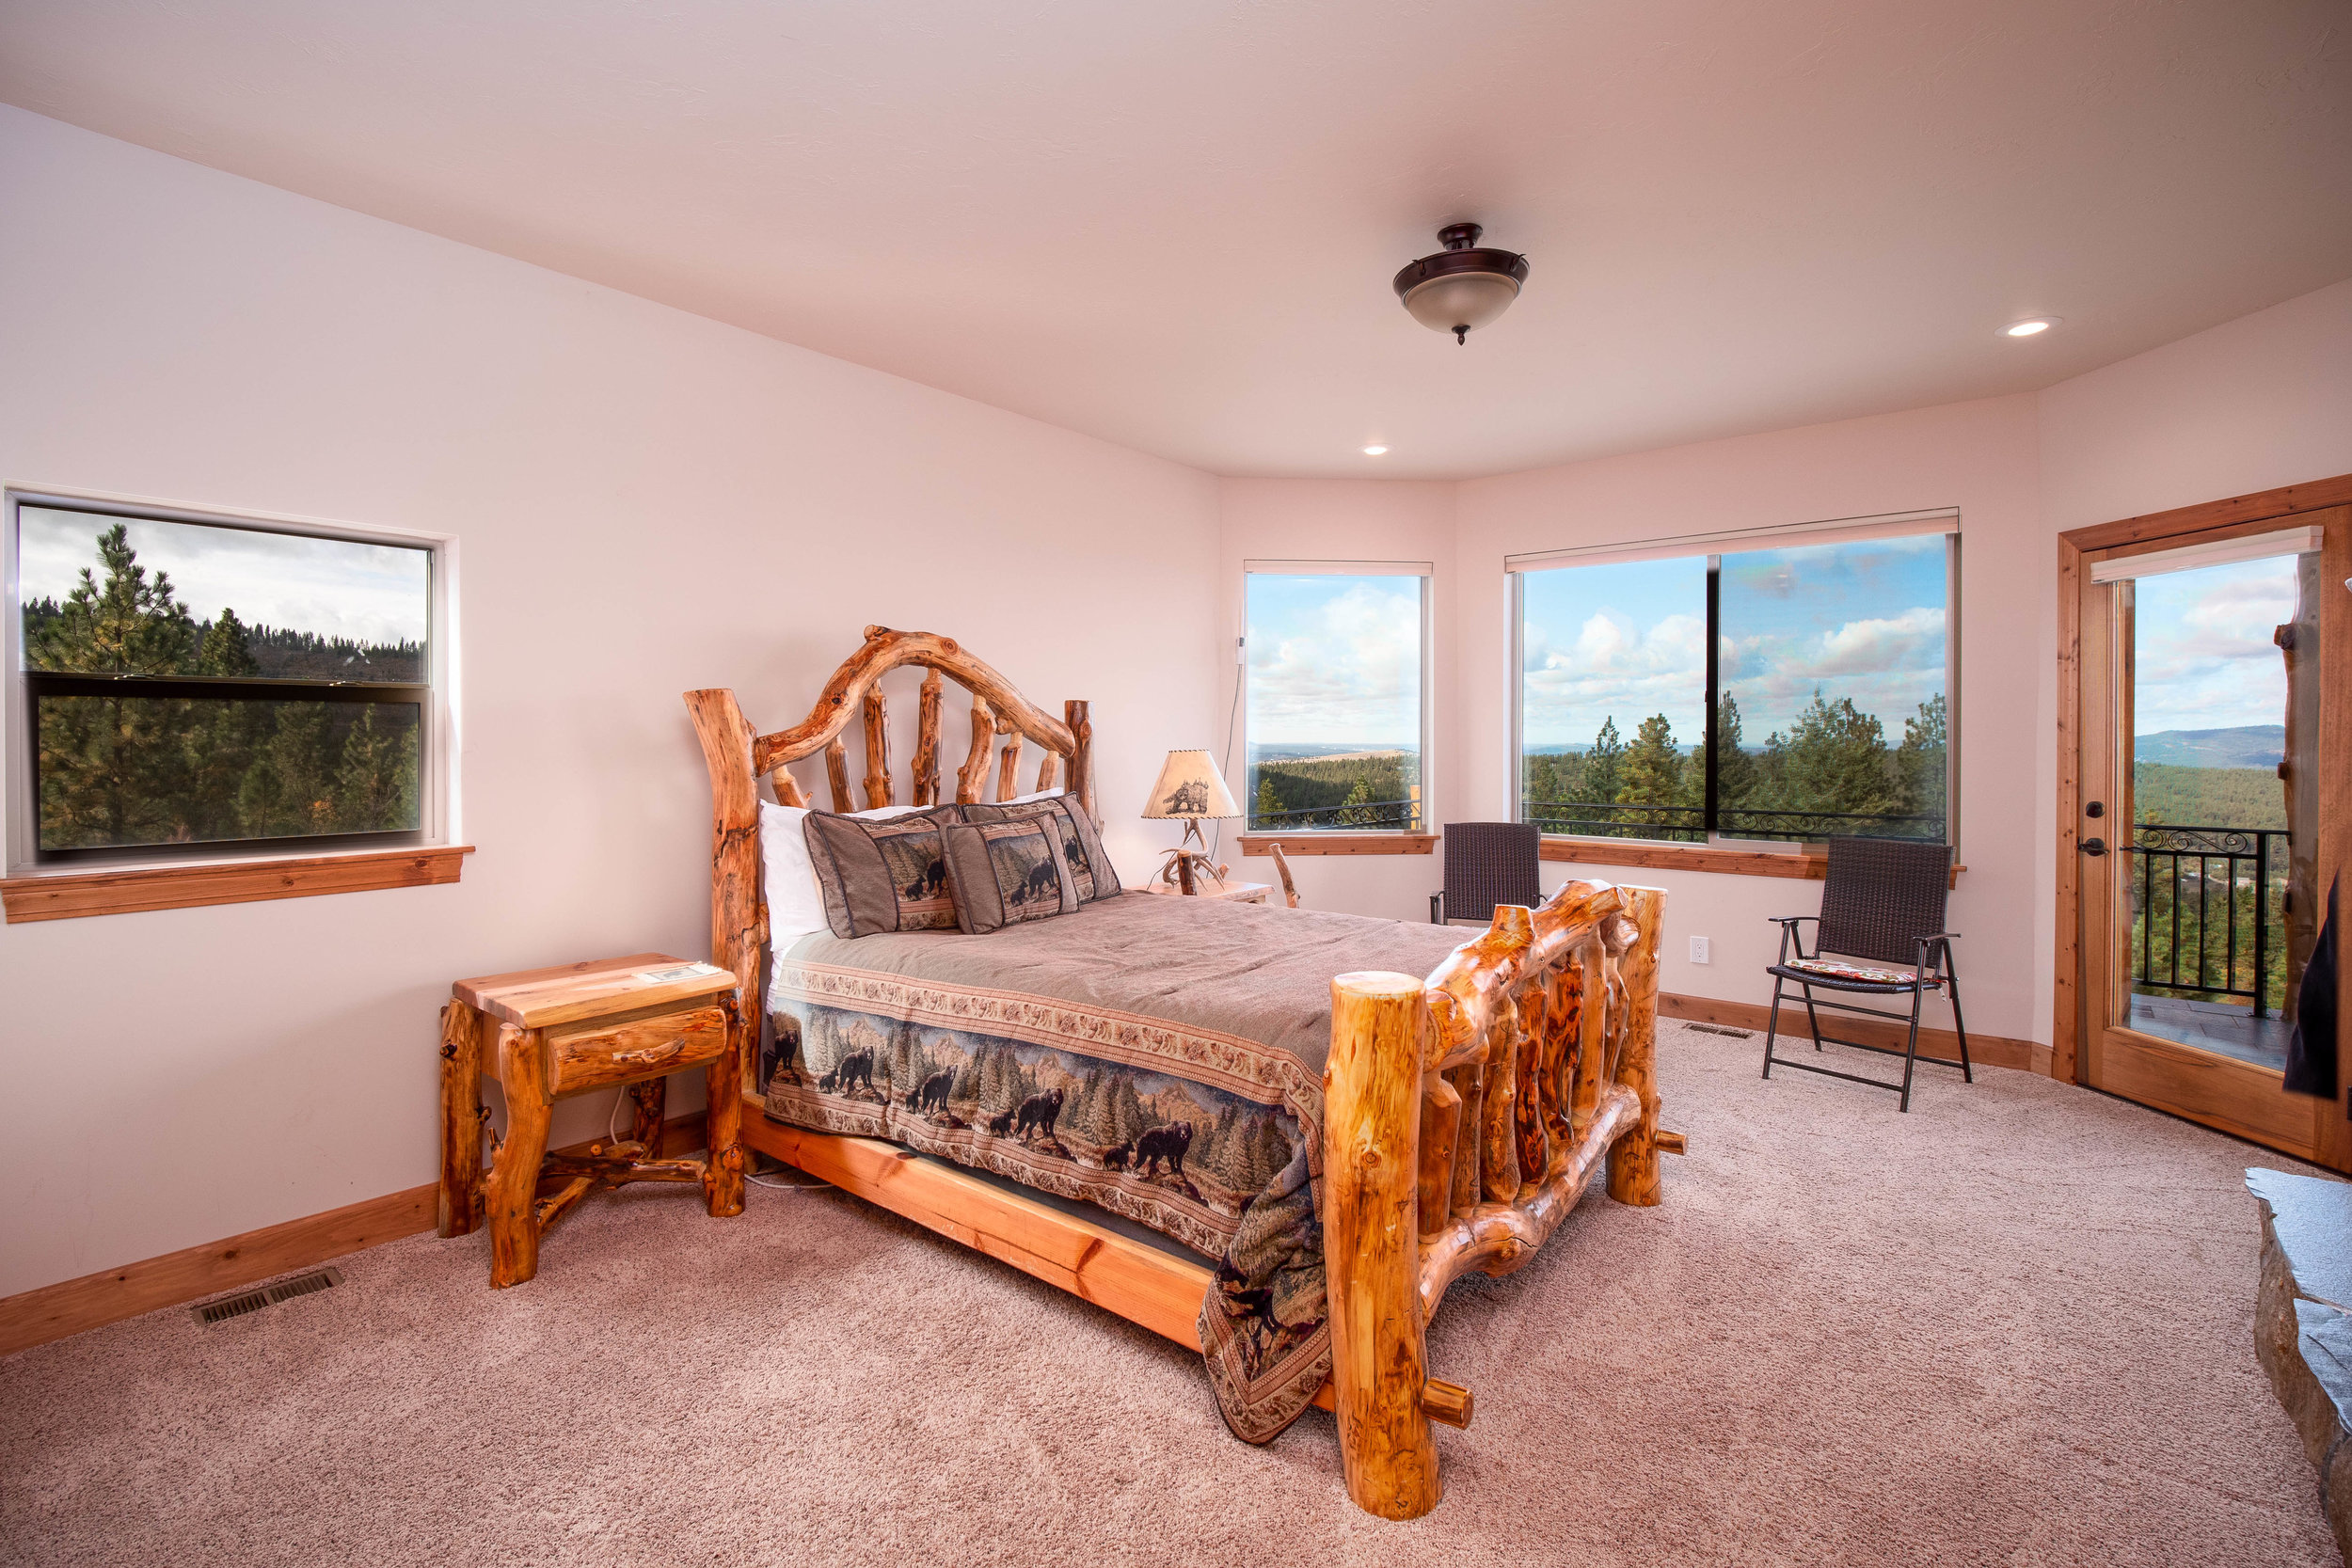 One of several spacious bedrooms with its own private bathroom. There isn't a window in the lodge with a bad view.